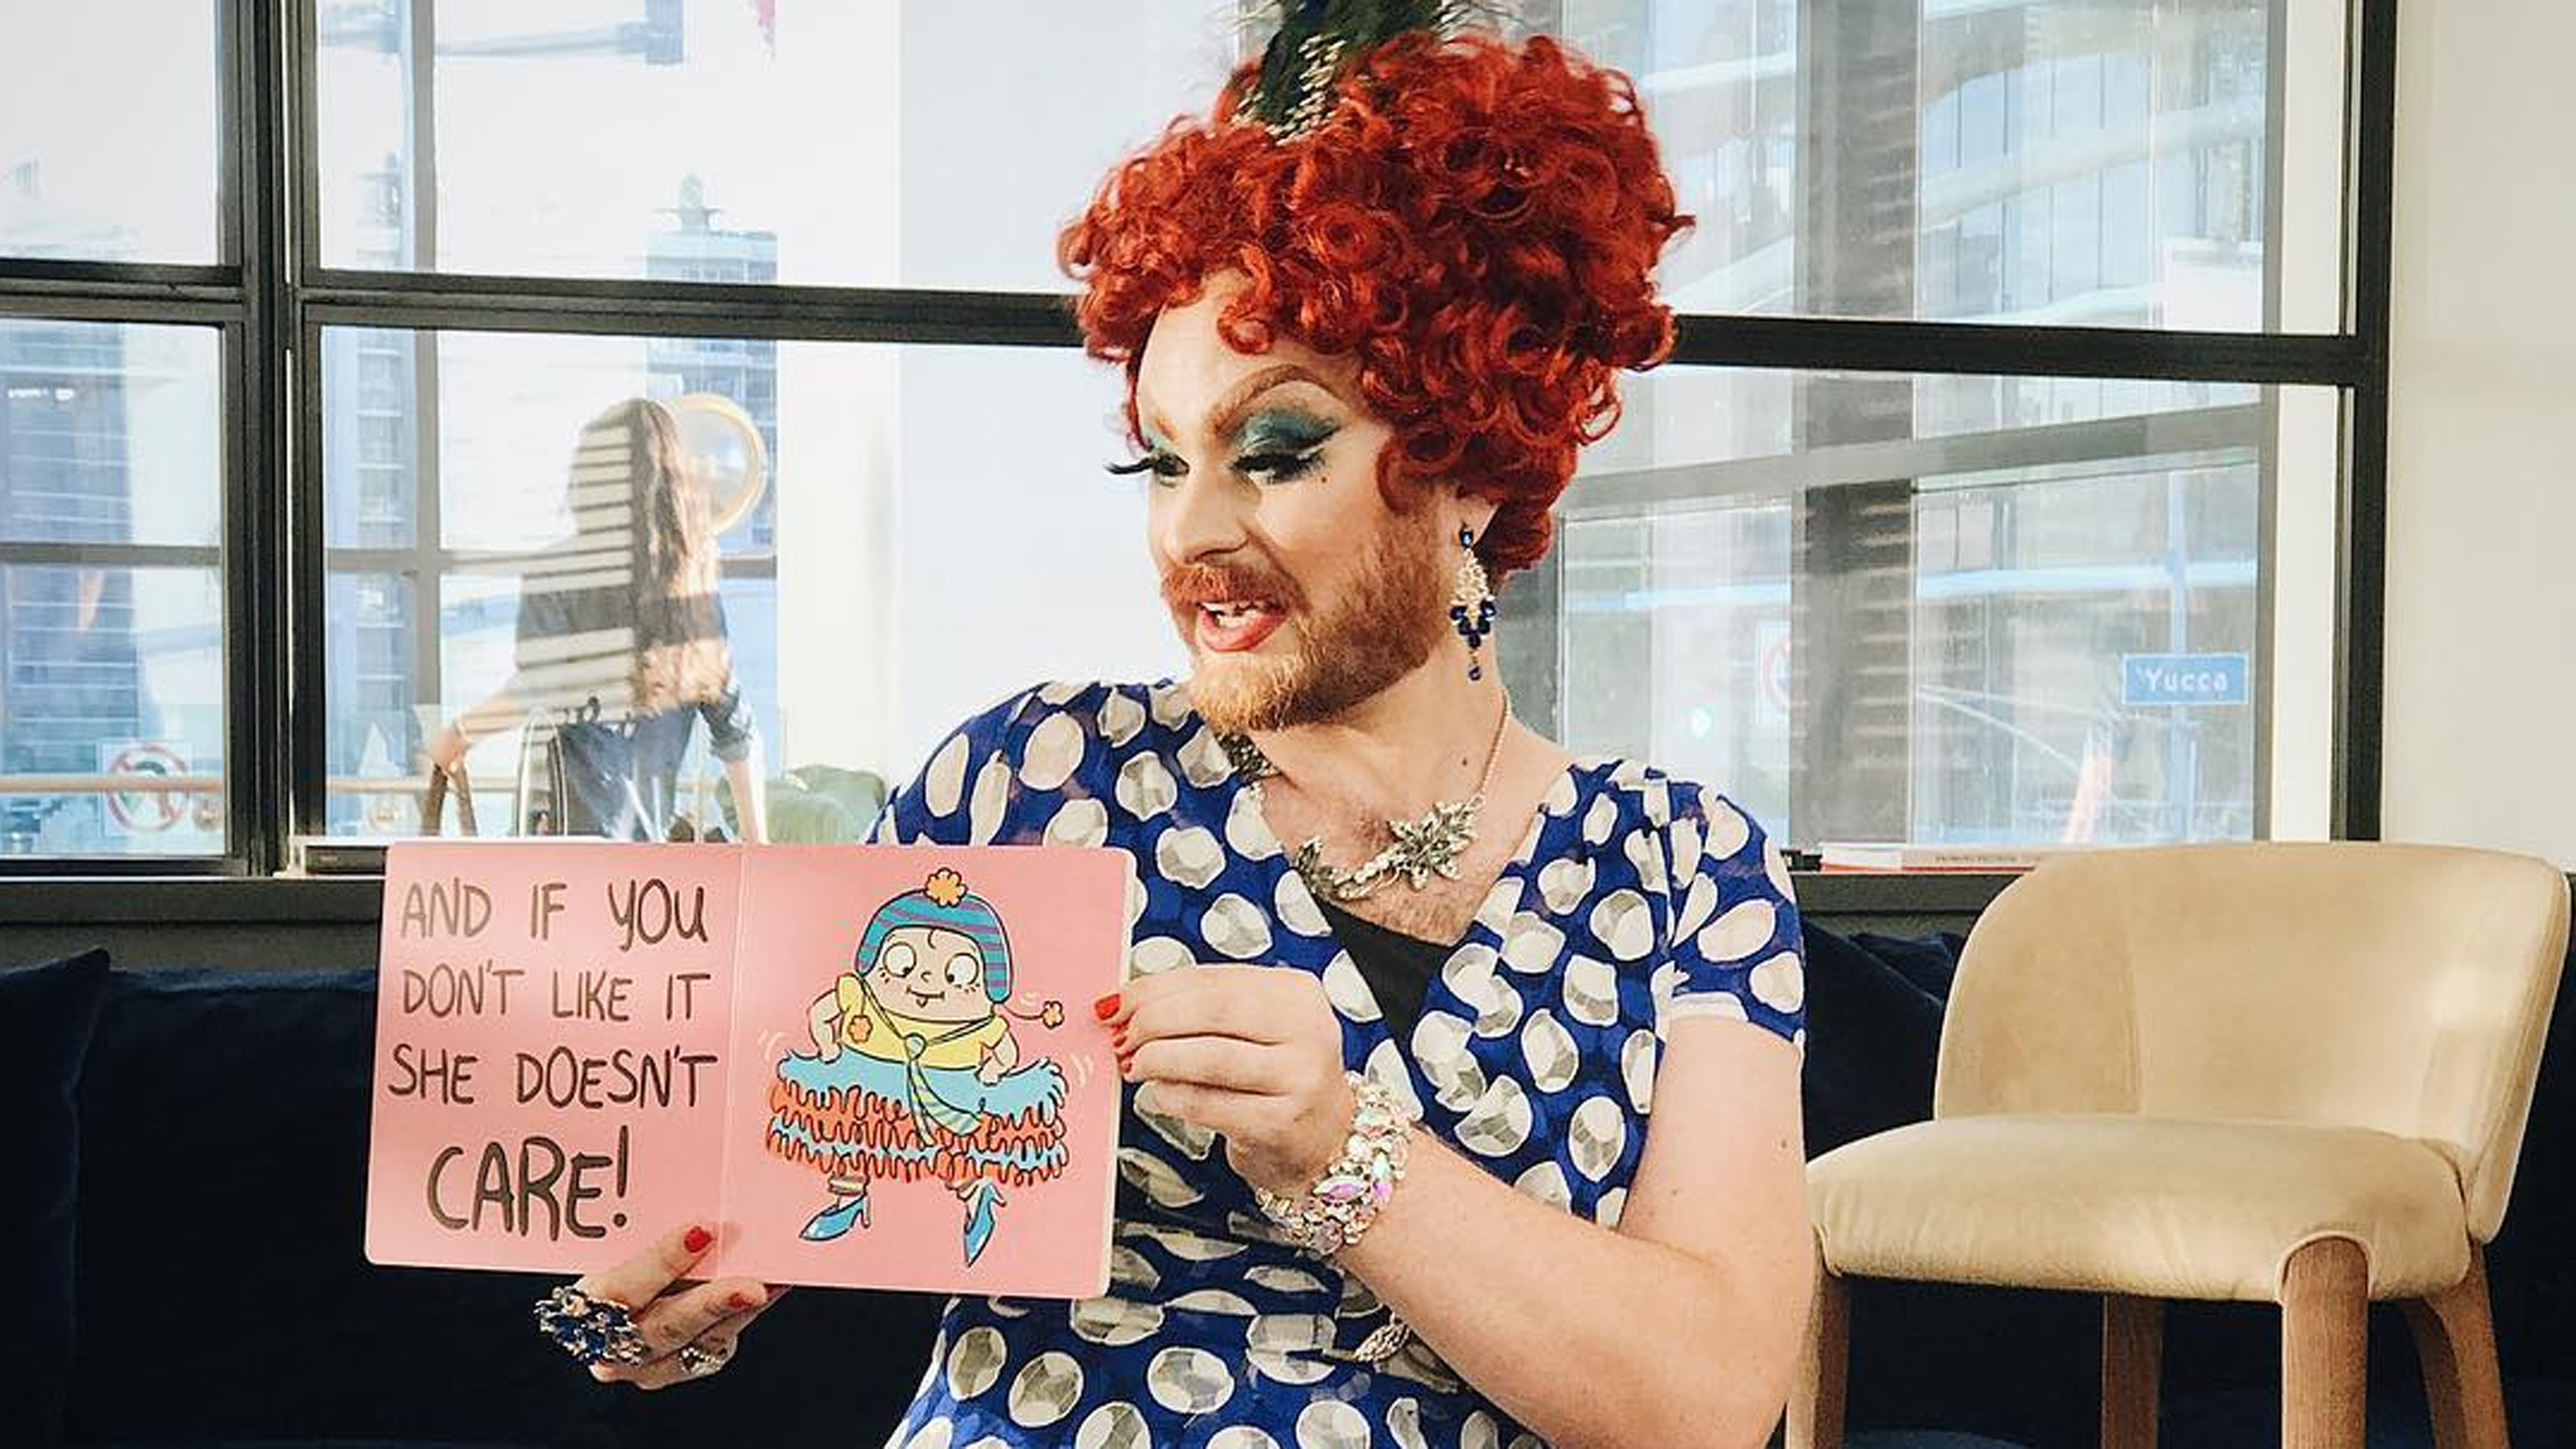 Children's literature and gender nonconformity come together at Drag Queen Story Hour